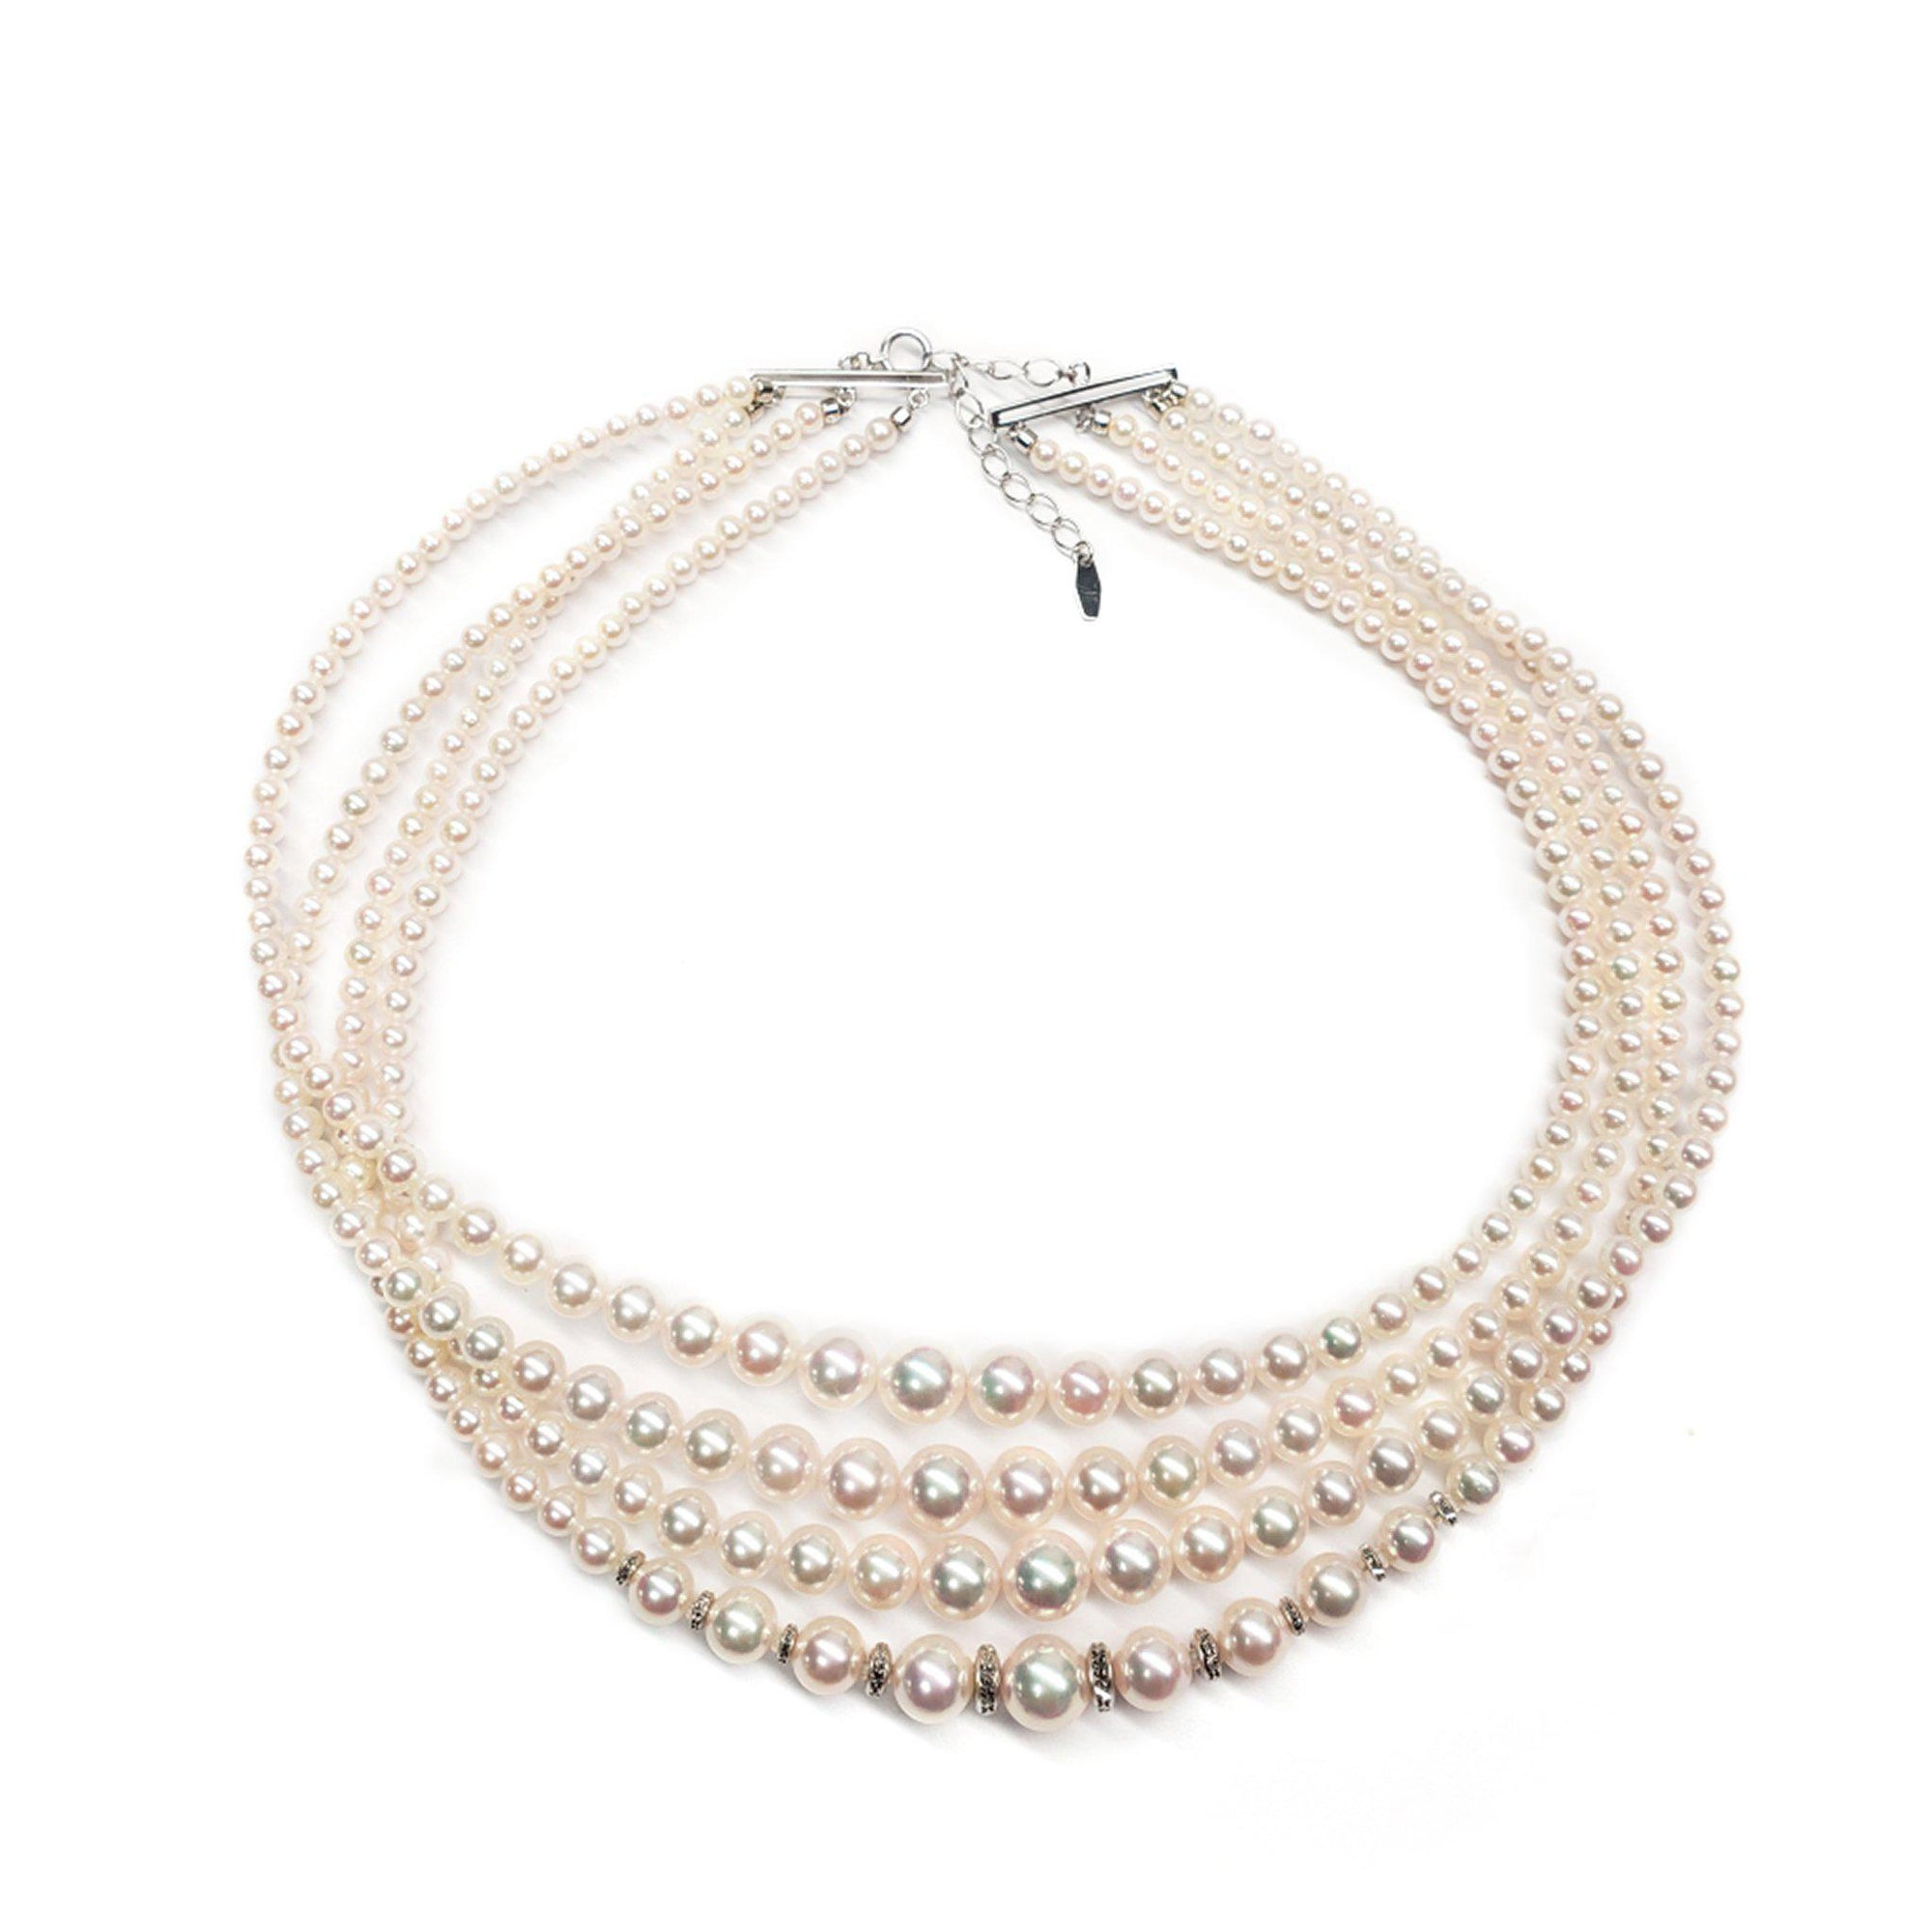 "16"" Quadruple Akoya Pearl Necklace in 18K White Gold (3.4-7.5mm) - Maui Divers Jewelry"